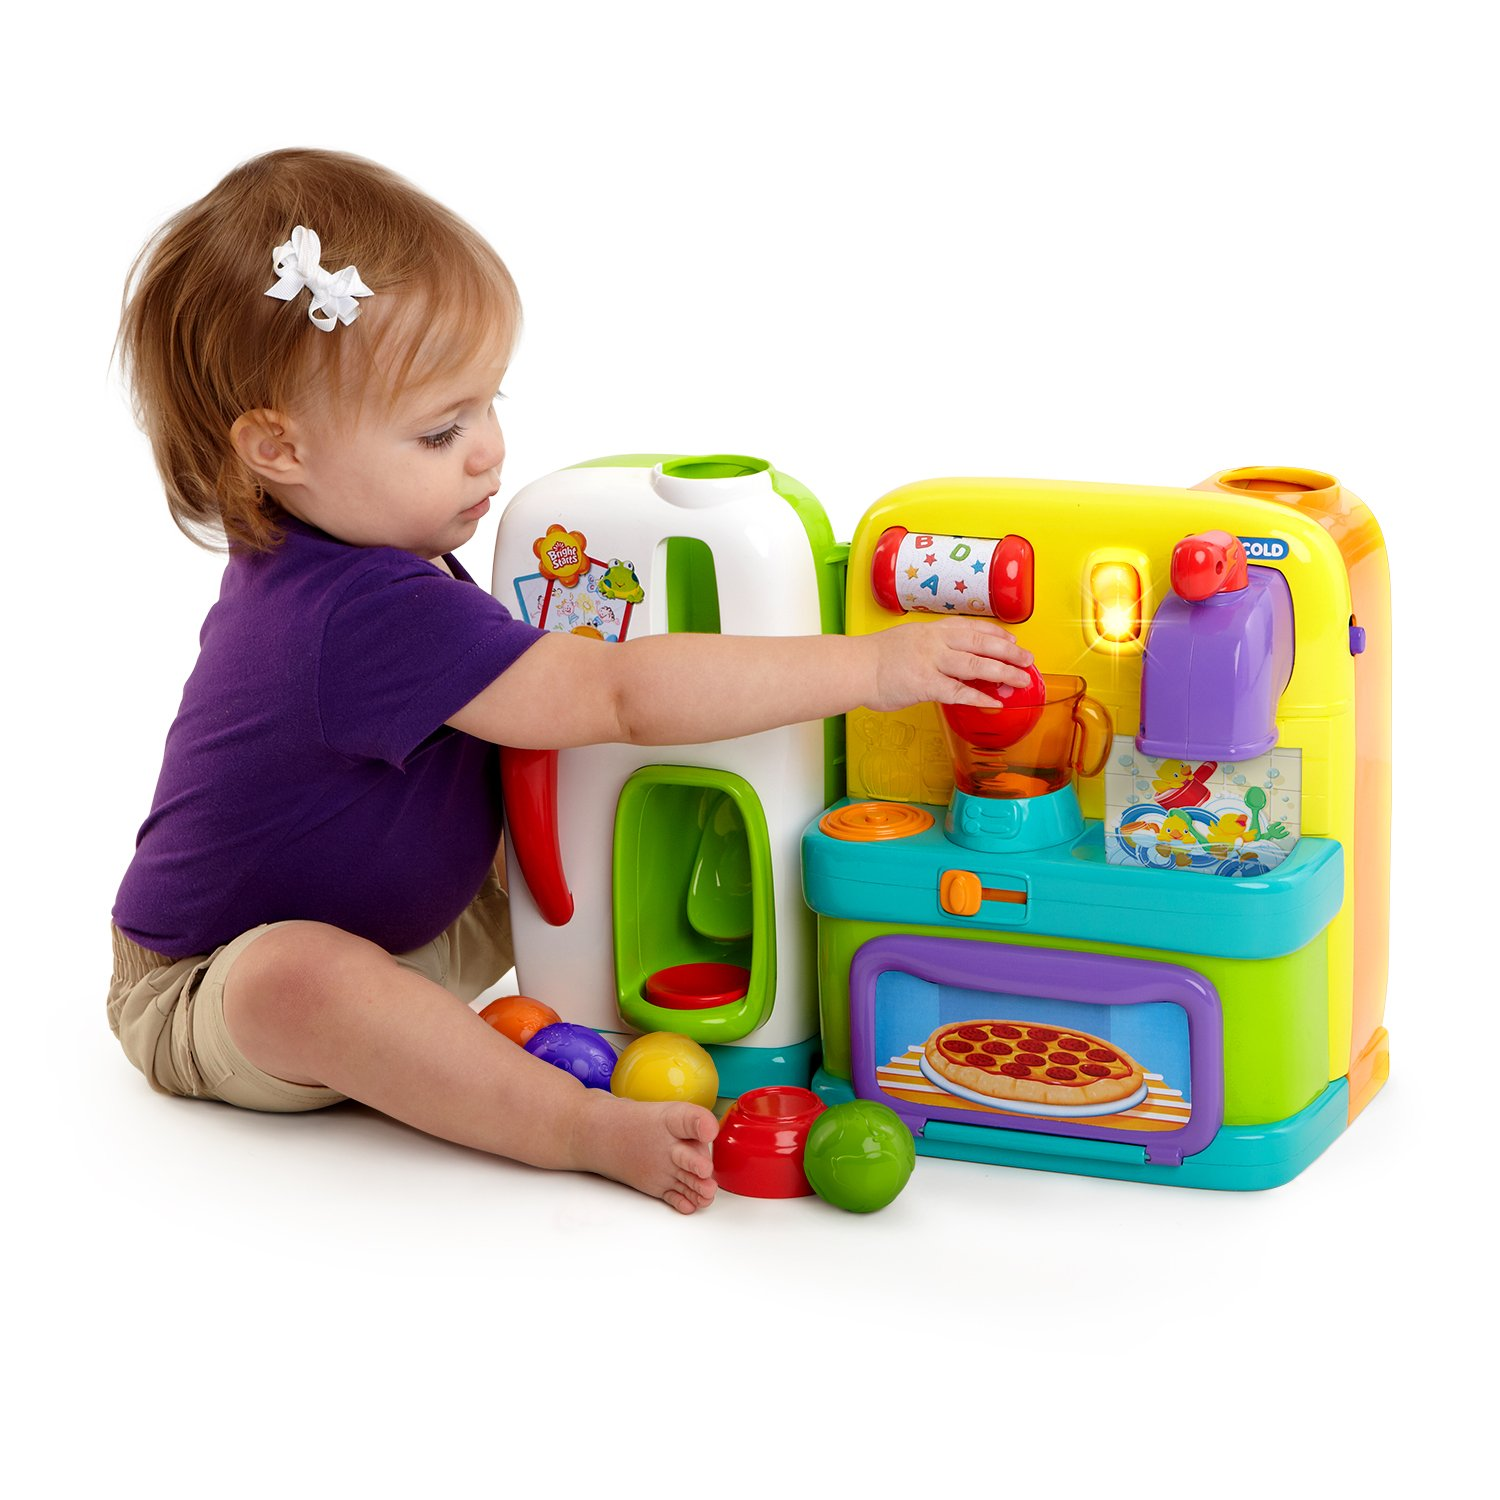 Best Christmas Toys for 1 Year Old Girls